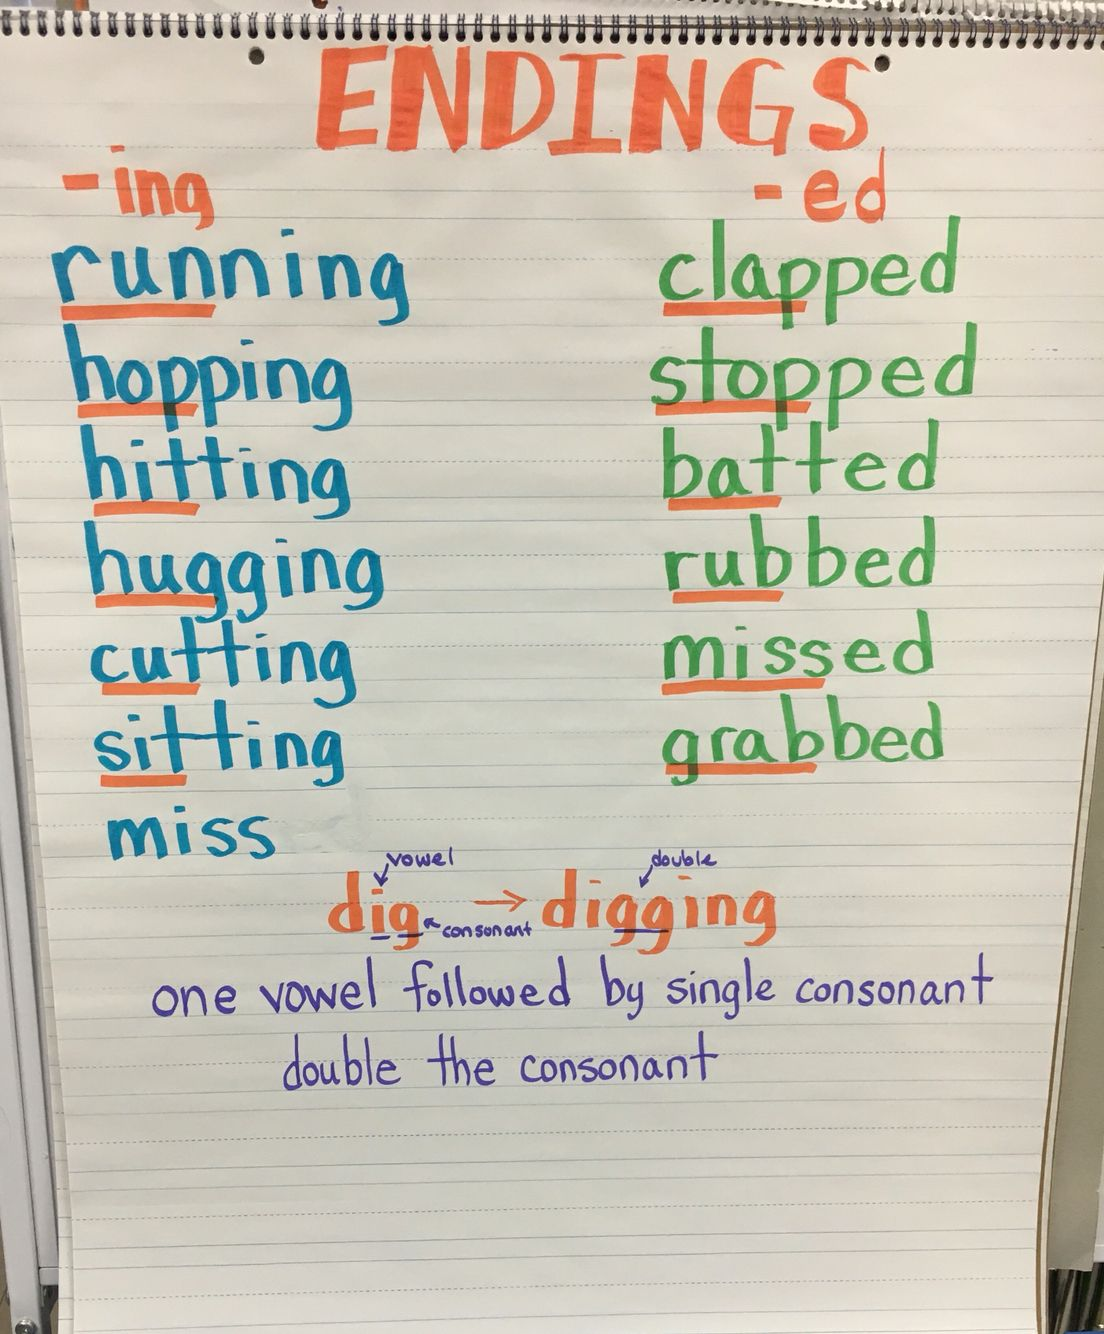 Ed And Ing Endings Suffixes When To Double The